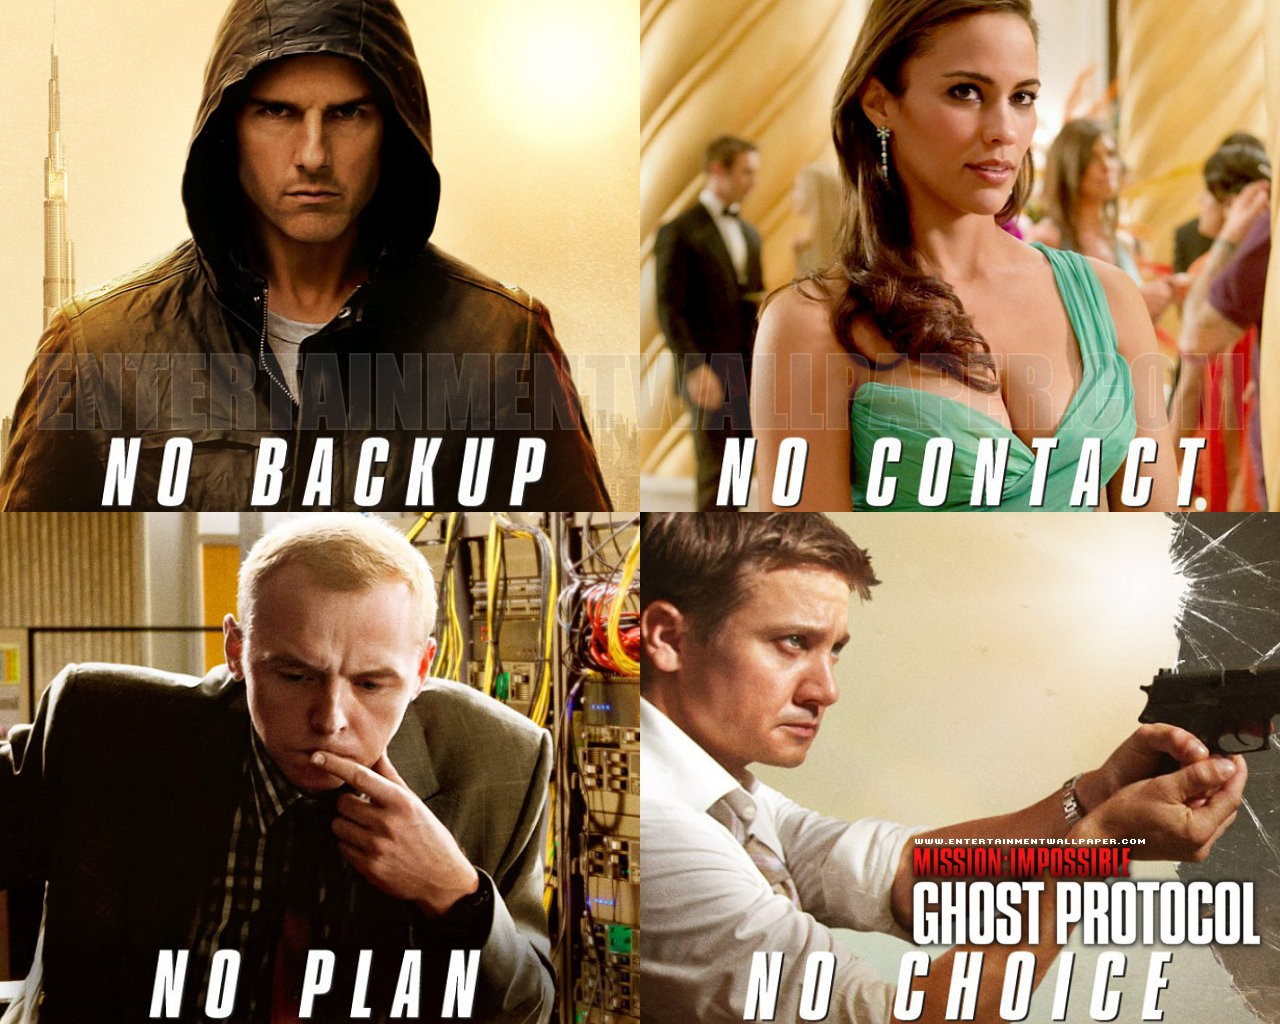 Mission Impossible Ghost Protocol 2011 Upcoming Movies